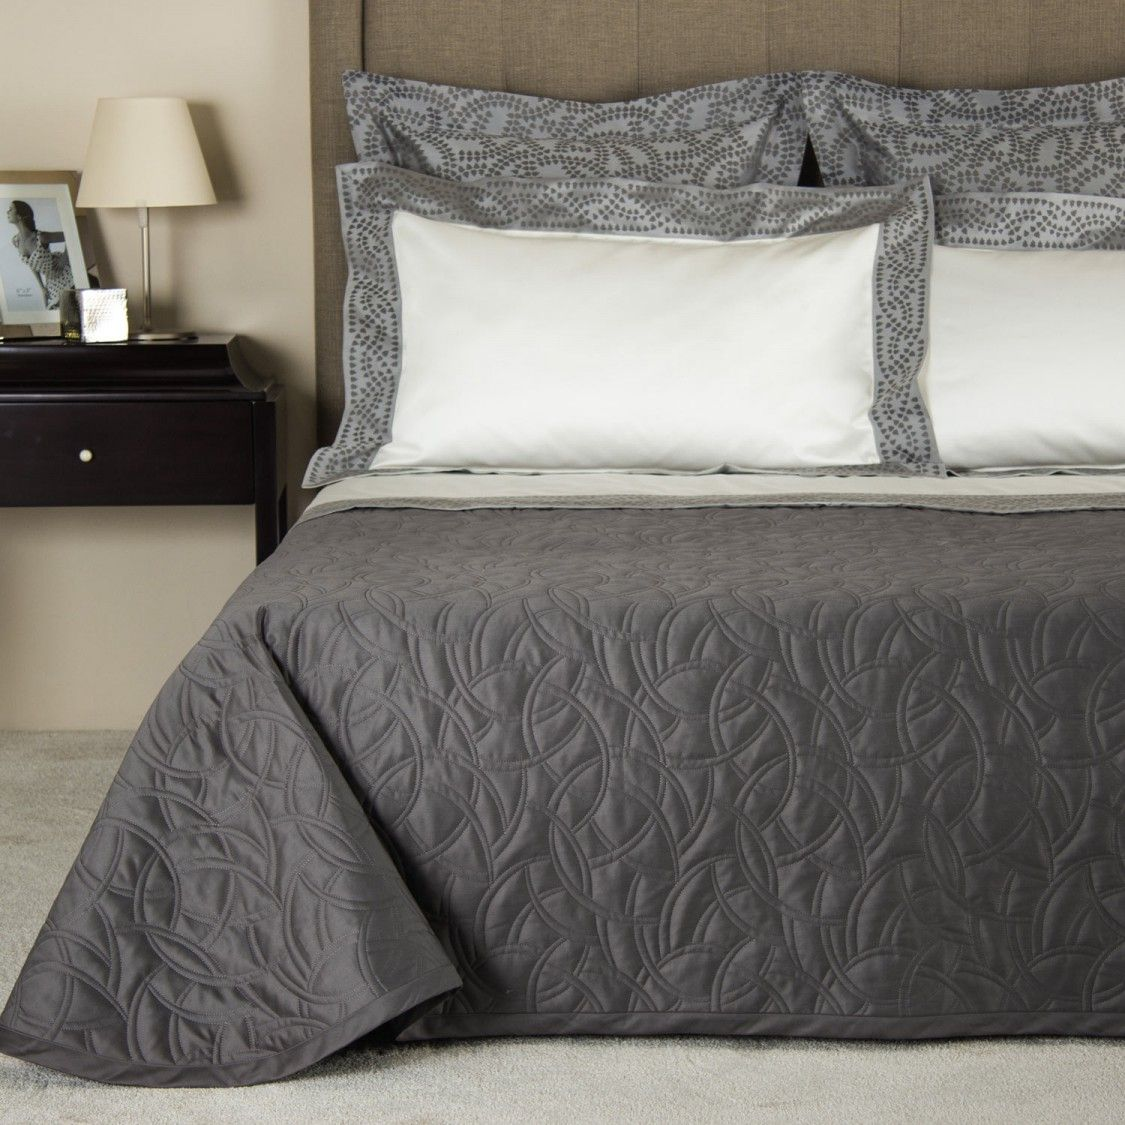 Gae and Doppio Ajour in Charcoal by Frette | Fall Winter 2015 ...